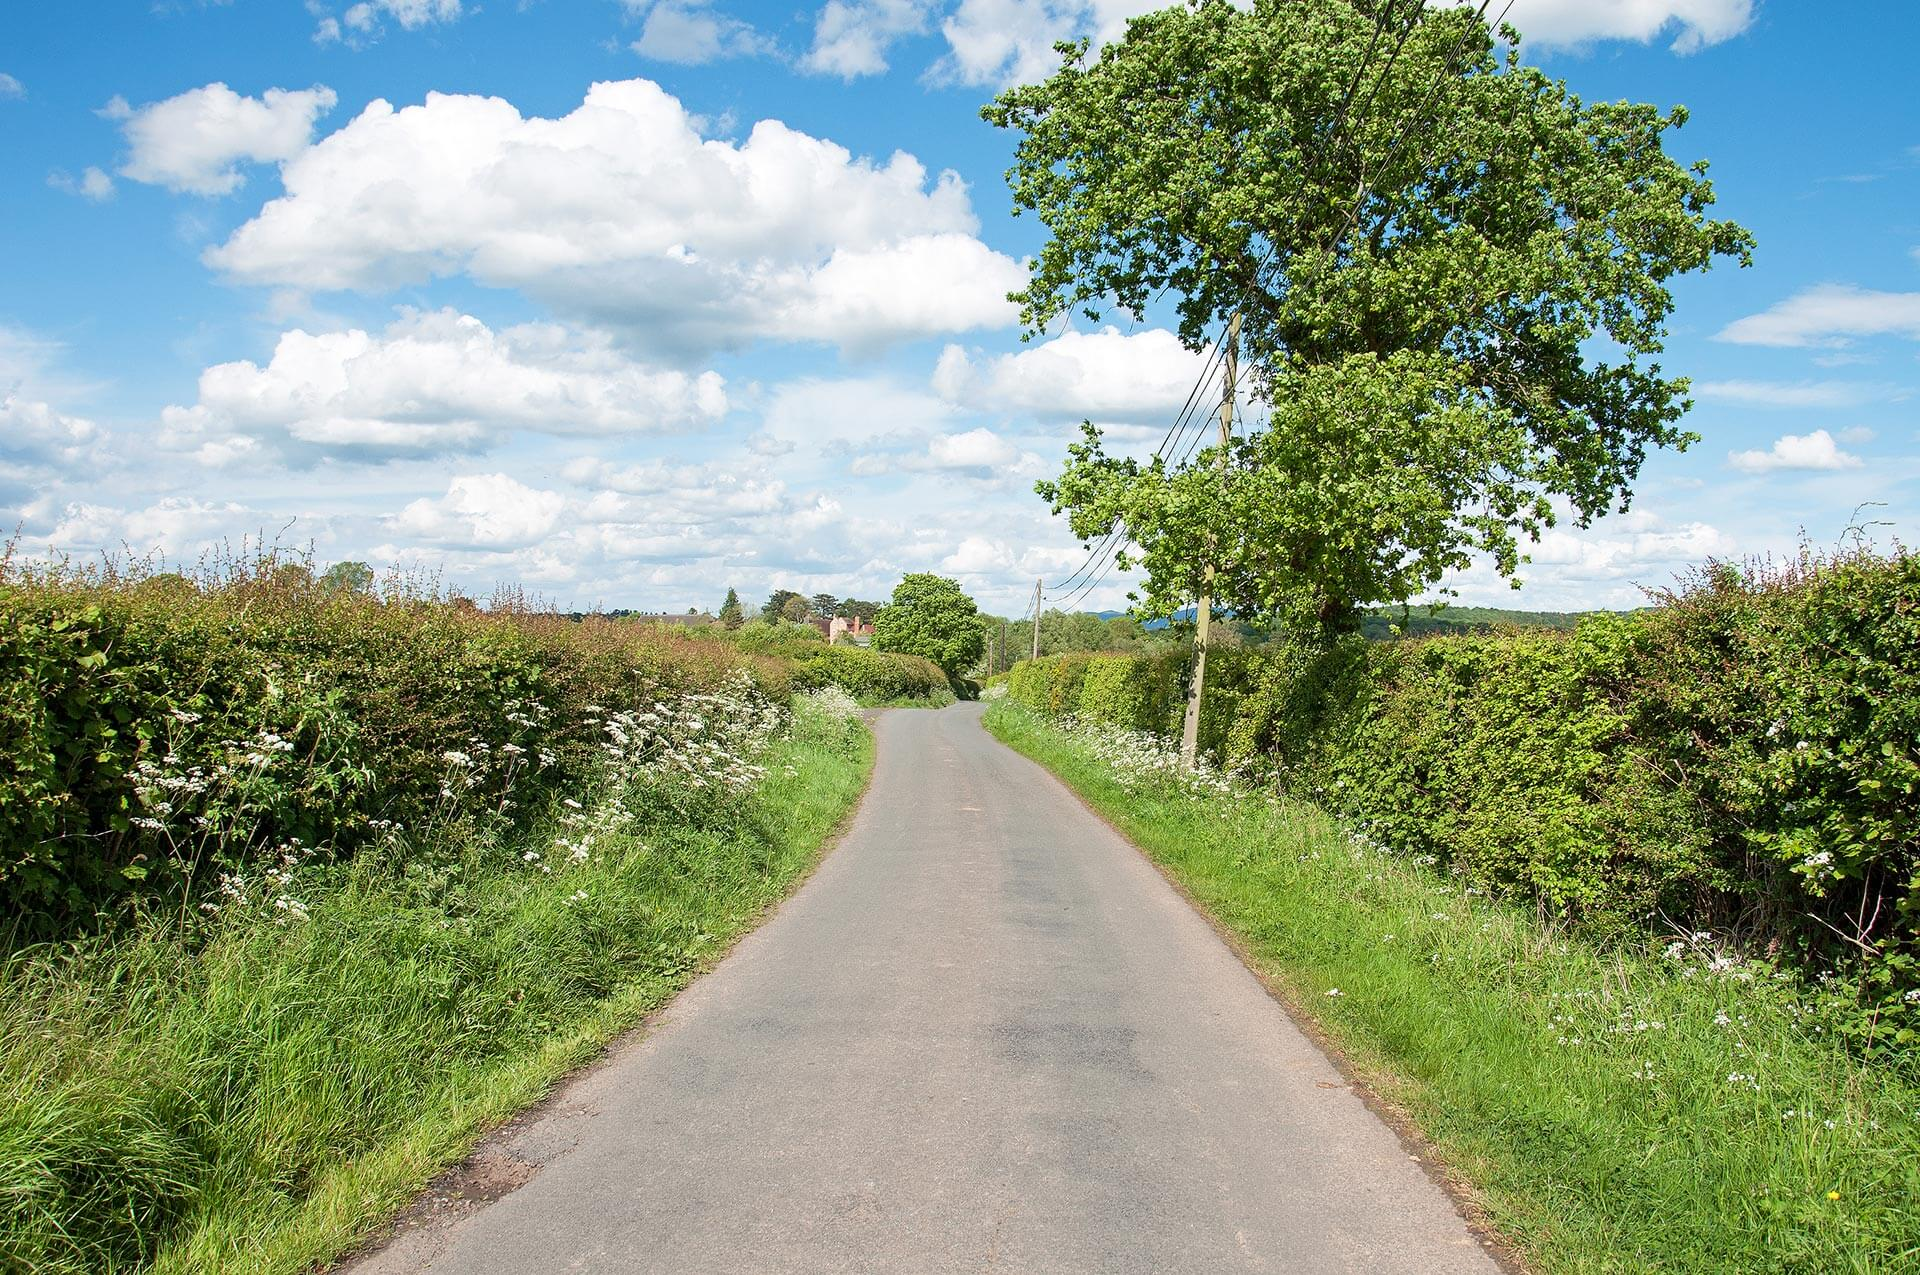 Road in British countryside